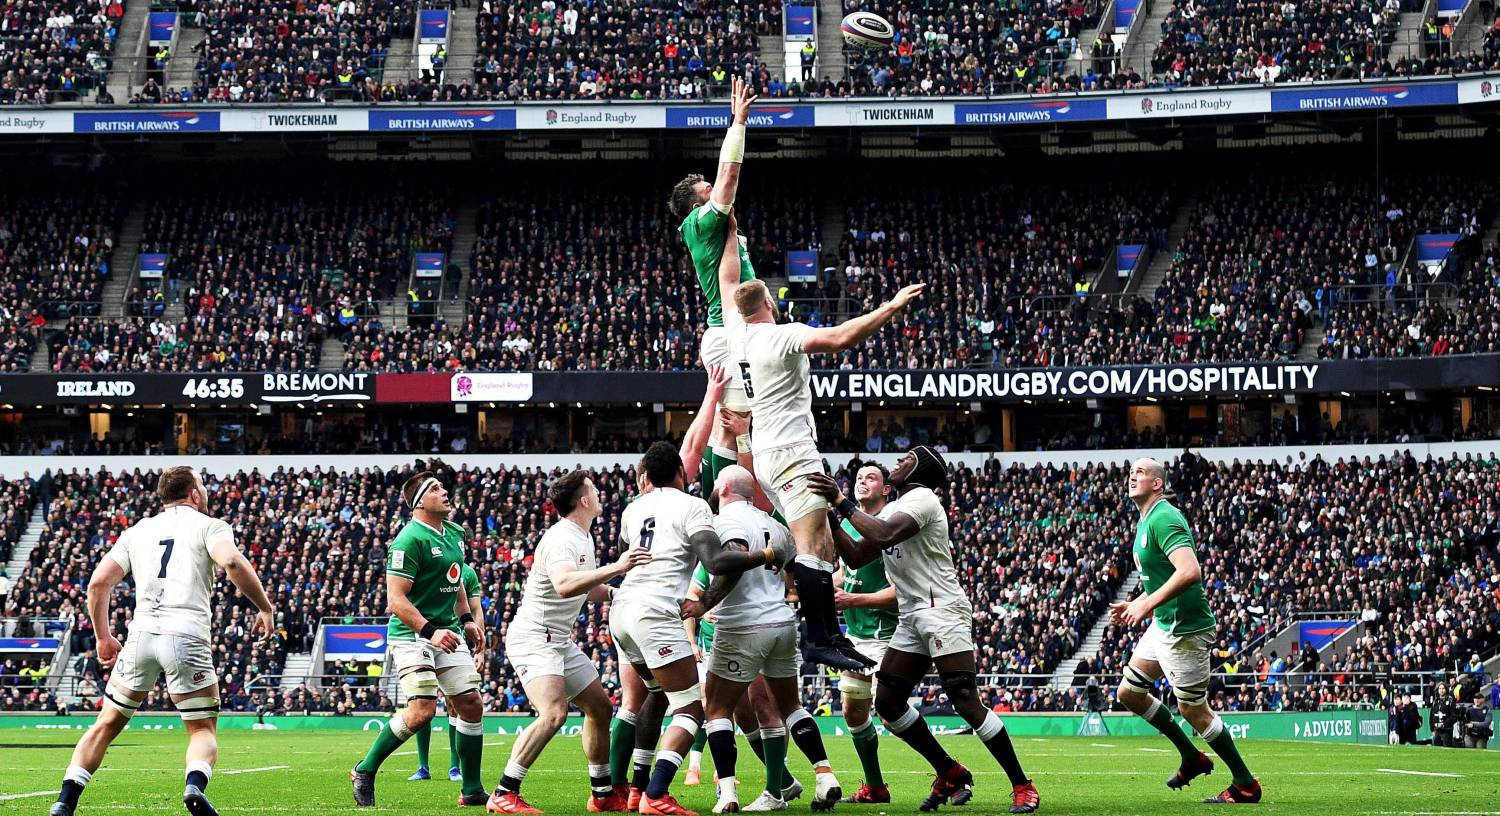 Aligning global rugby calendar makes commercial sense - Philip Browne